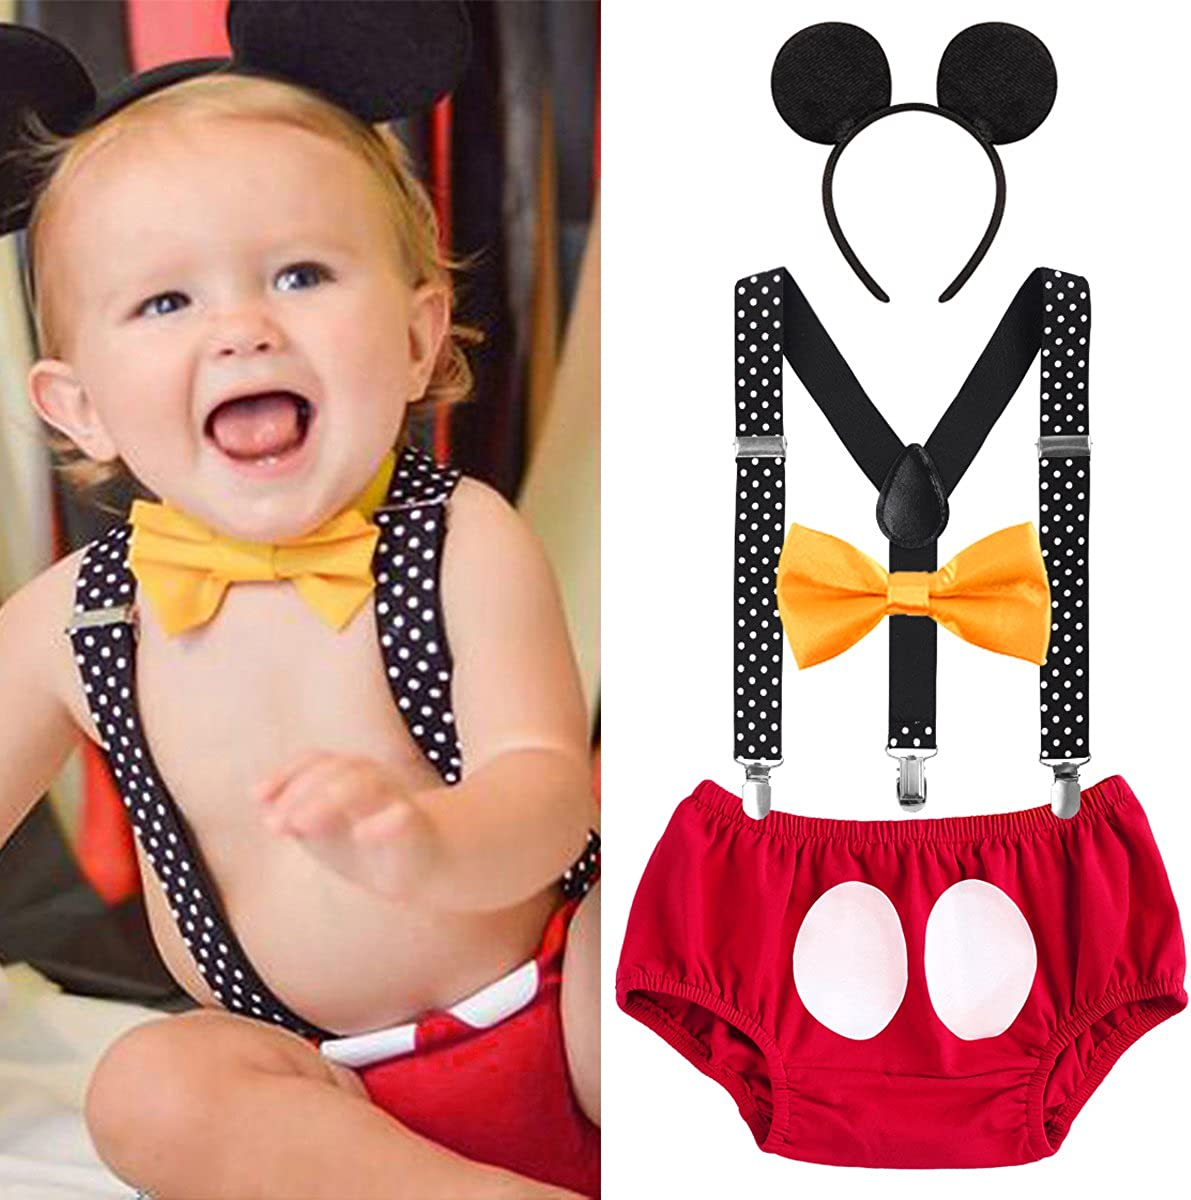 Boys Cake Smash Outfit Bow Tie Diaper Cover 1st Birthday Costume Photo Shoot